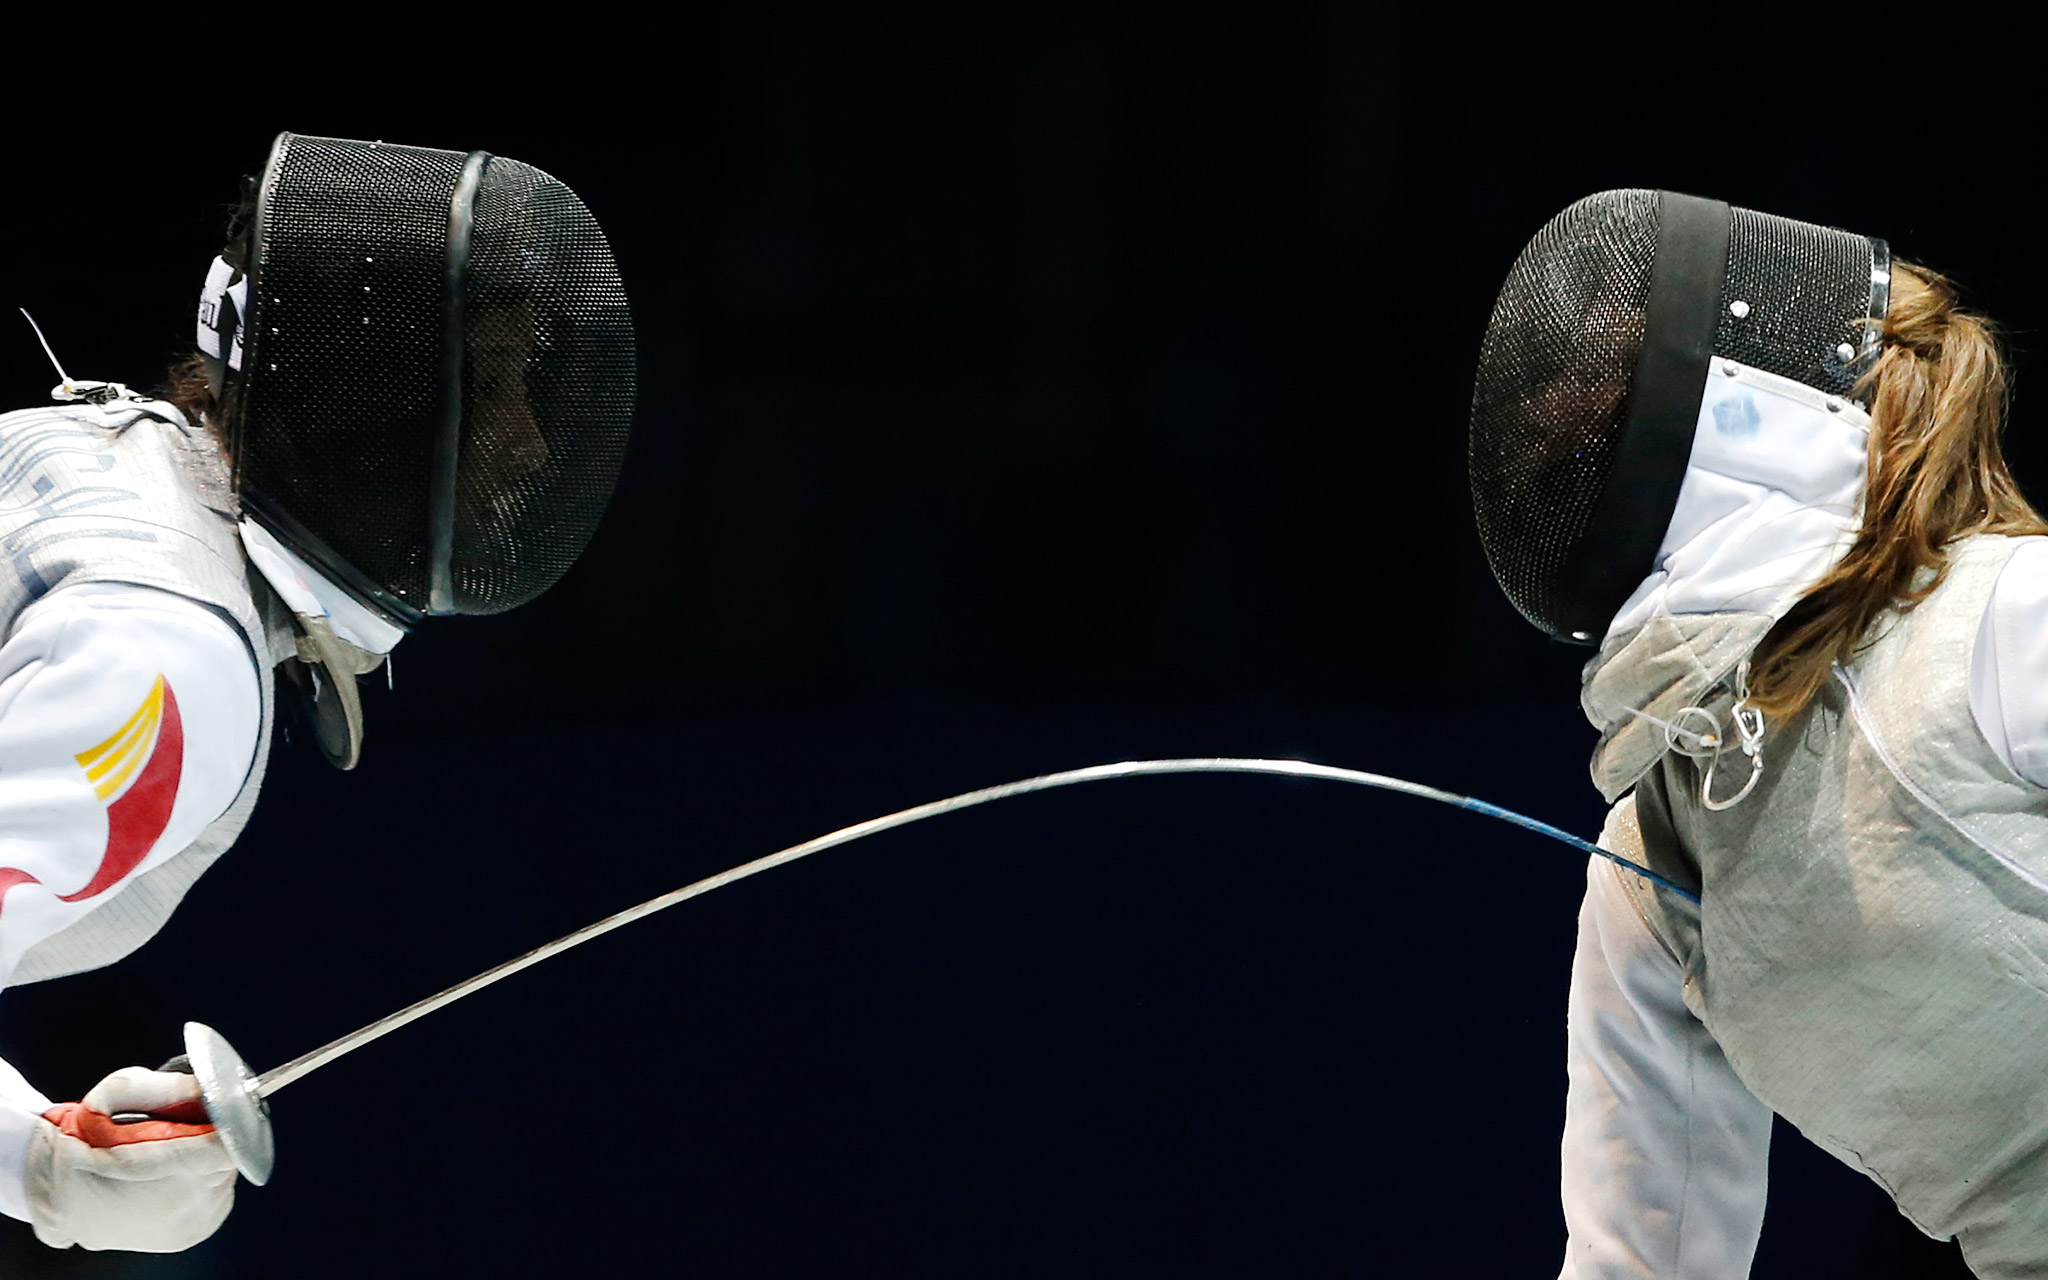 China's Huang Ali, left, and Russia's Marta Martyanova compete during the women's individual foil at the 2014 Nanjing Youth Olympic Games.